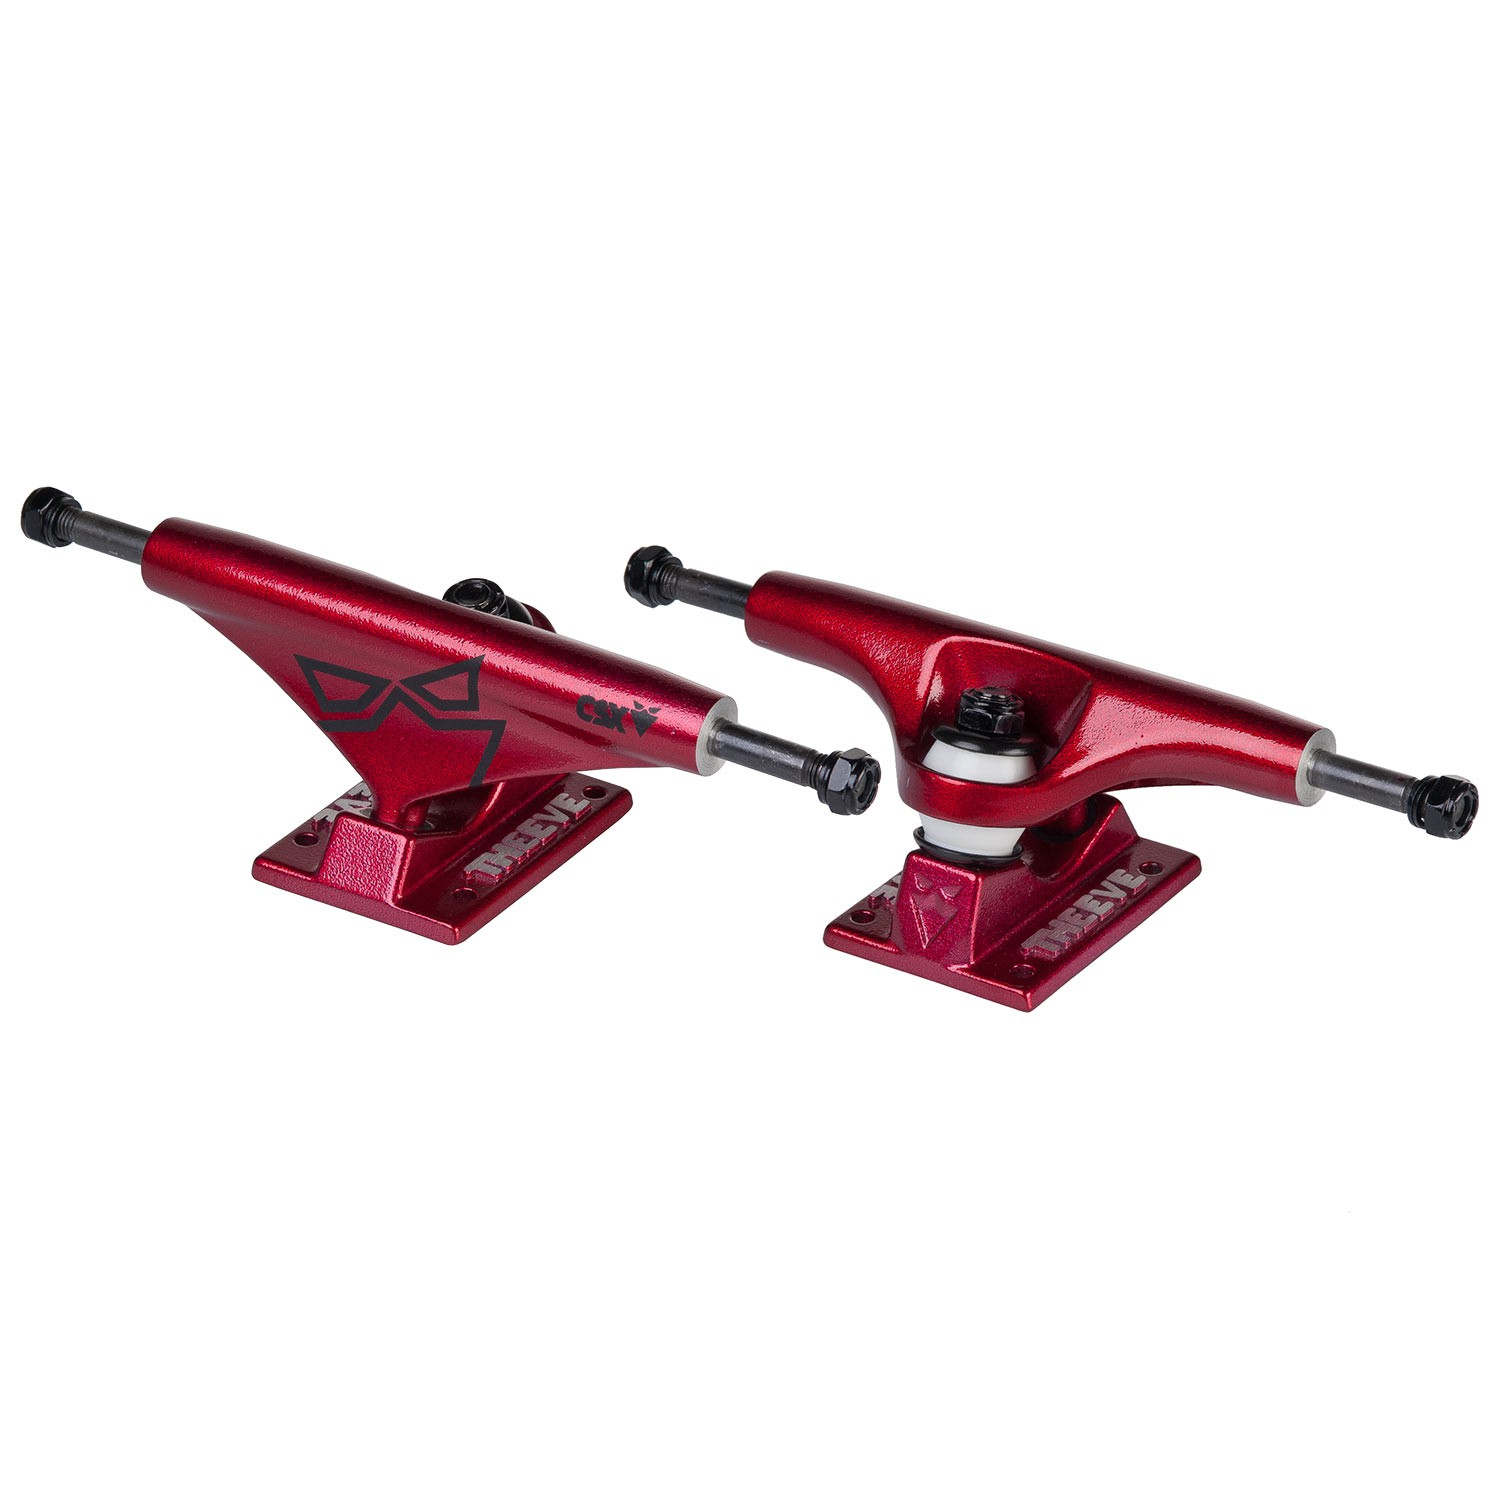 Truck Theeve Csx V3 140 Mm red/black